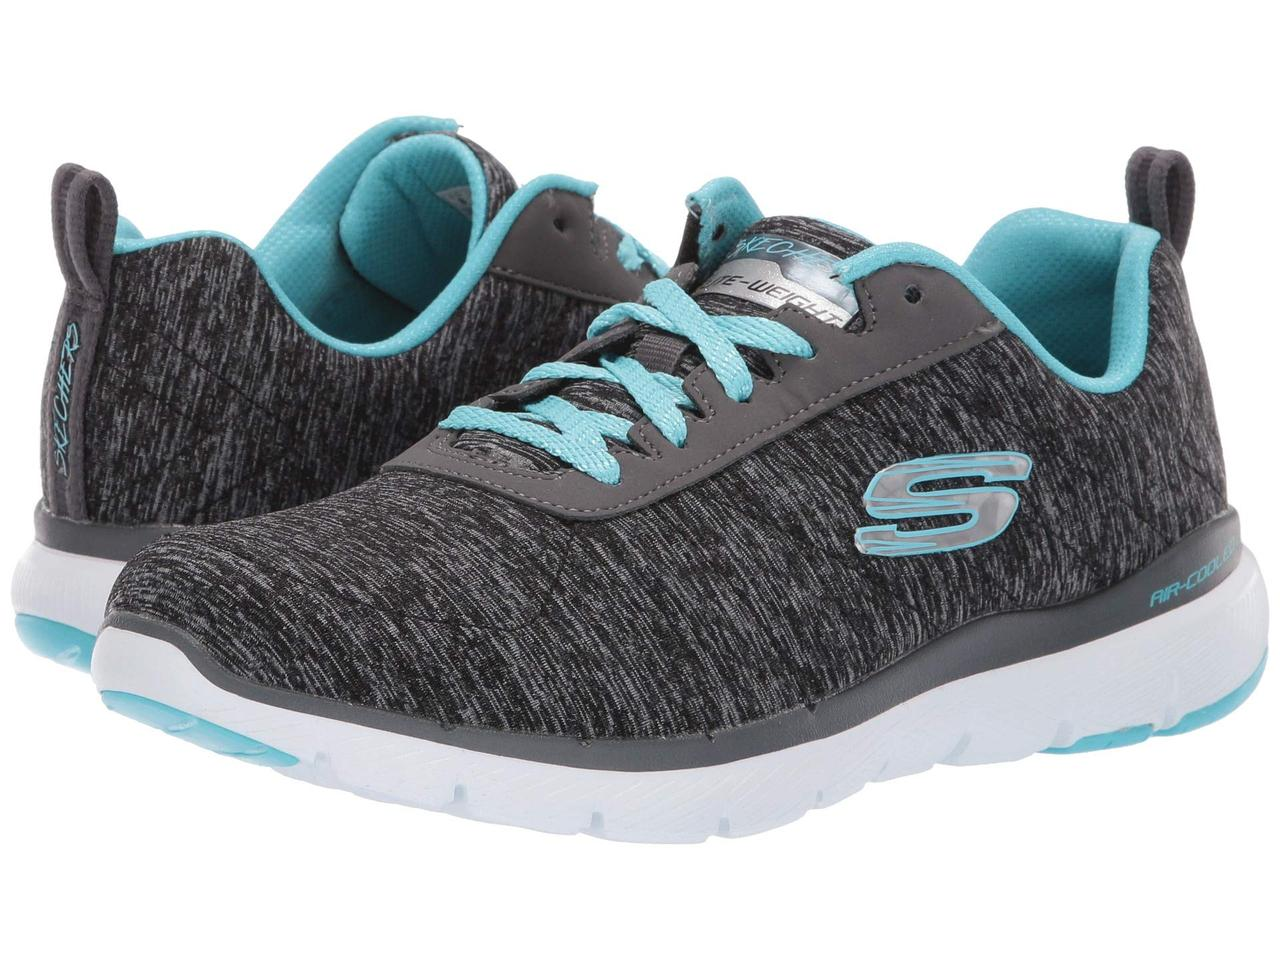 Кроссовки/Кеды (Оригинал) SKECHERS Flex Appeal 3.0 - Insiders Black/Light Blue